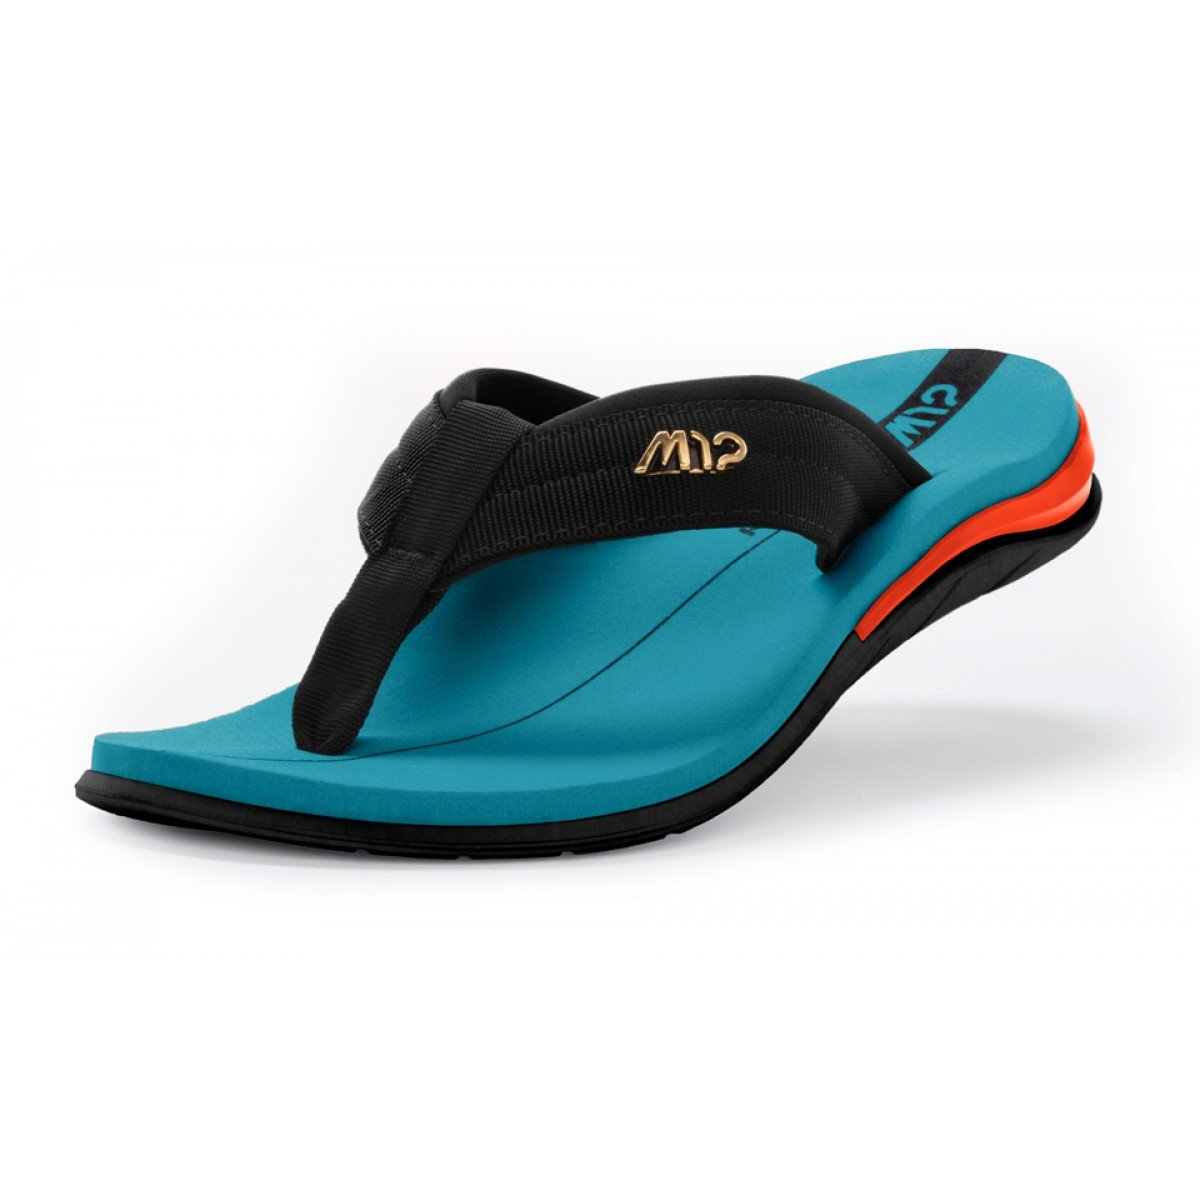 Chinelo Kenner Action Gel M12 Masculino - Azul